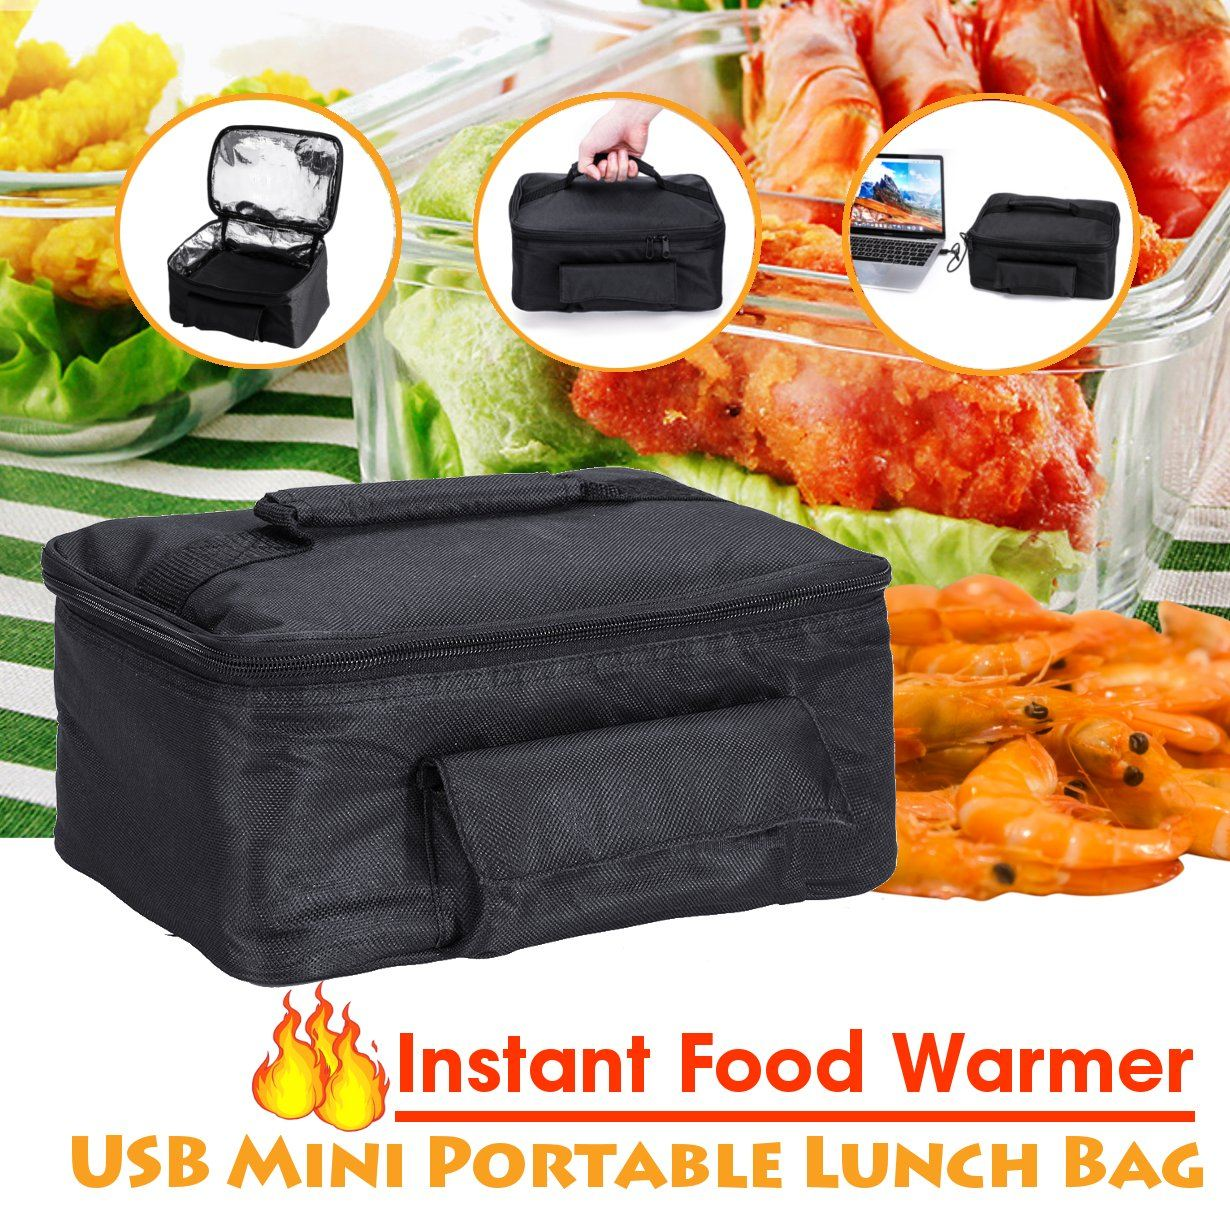 USB Mini Personal Portable Lunch Oven Bag  Food  Warmer Electric Oven Heating Lunch Box Vehicle/Household